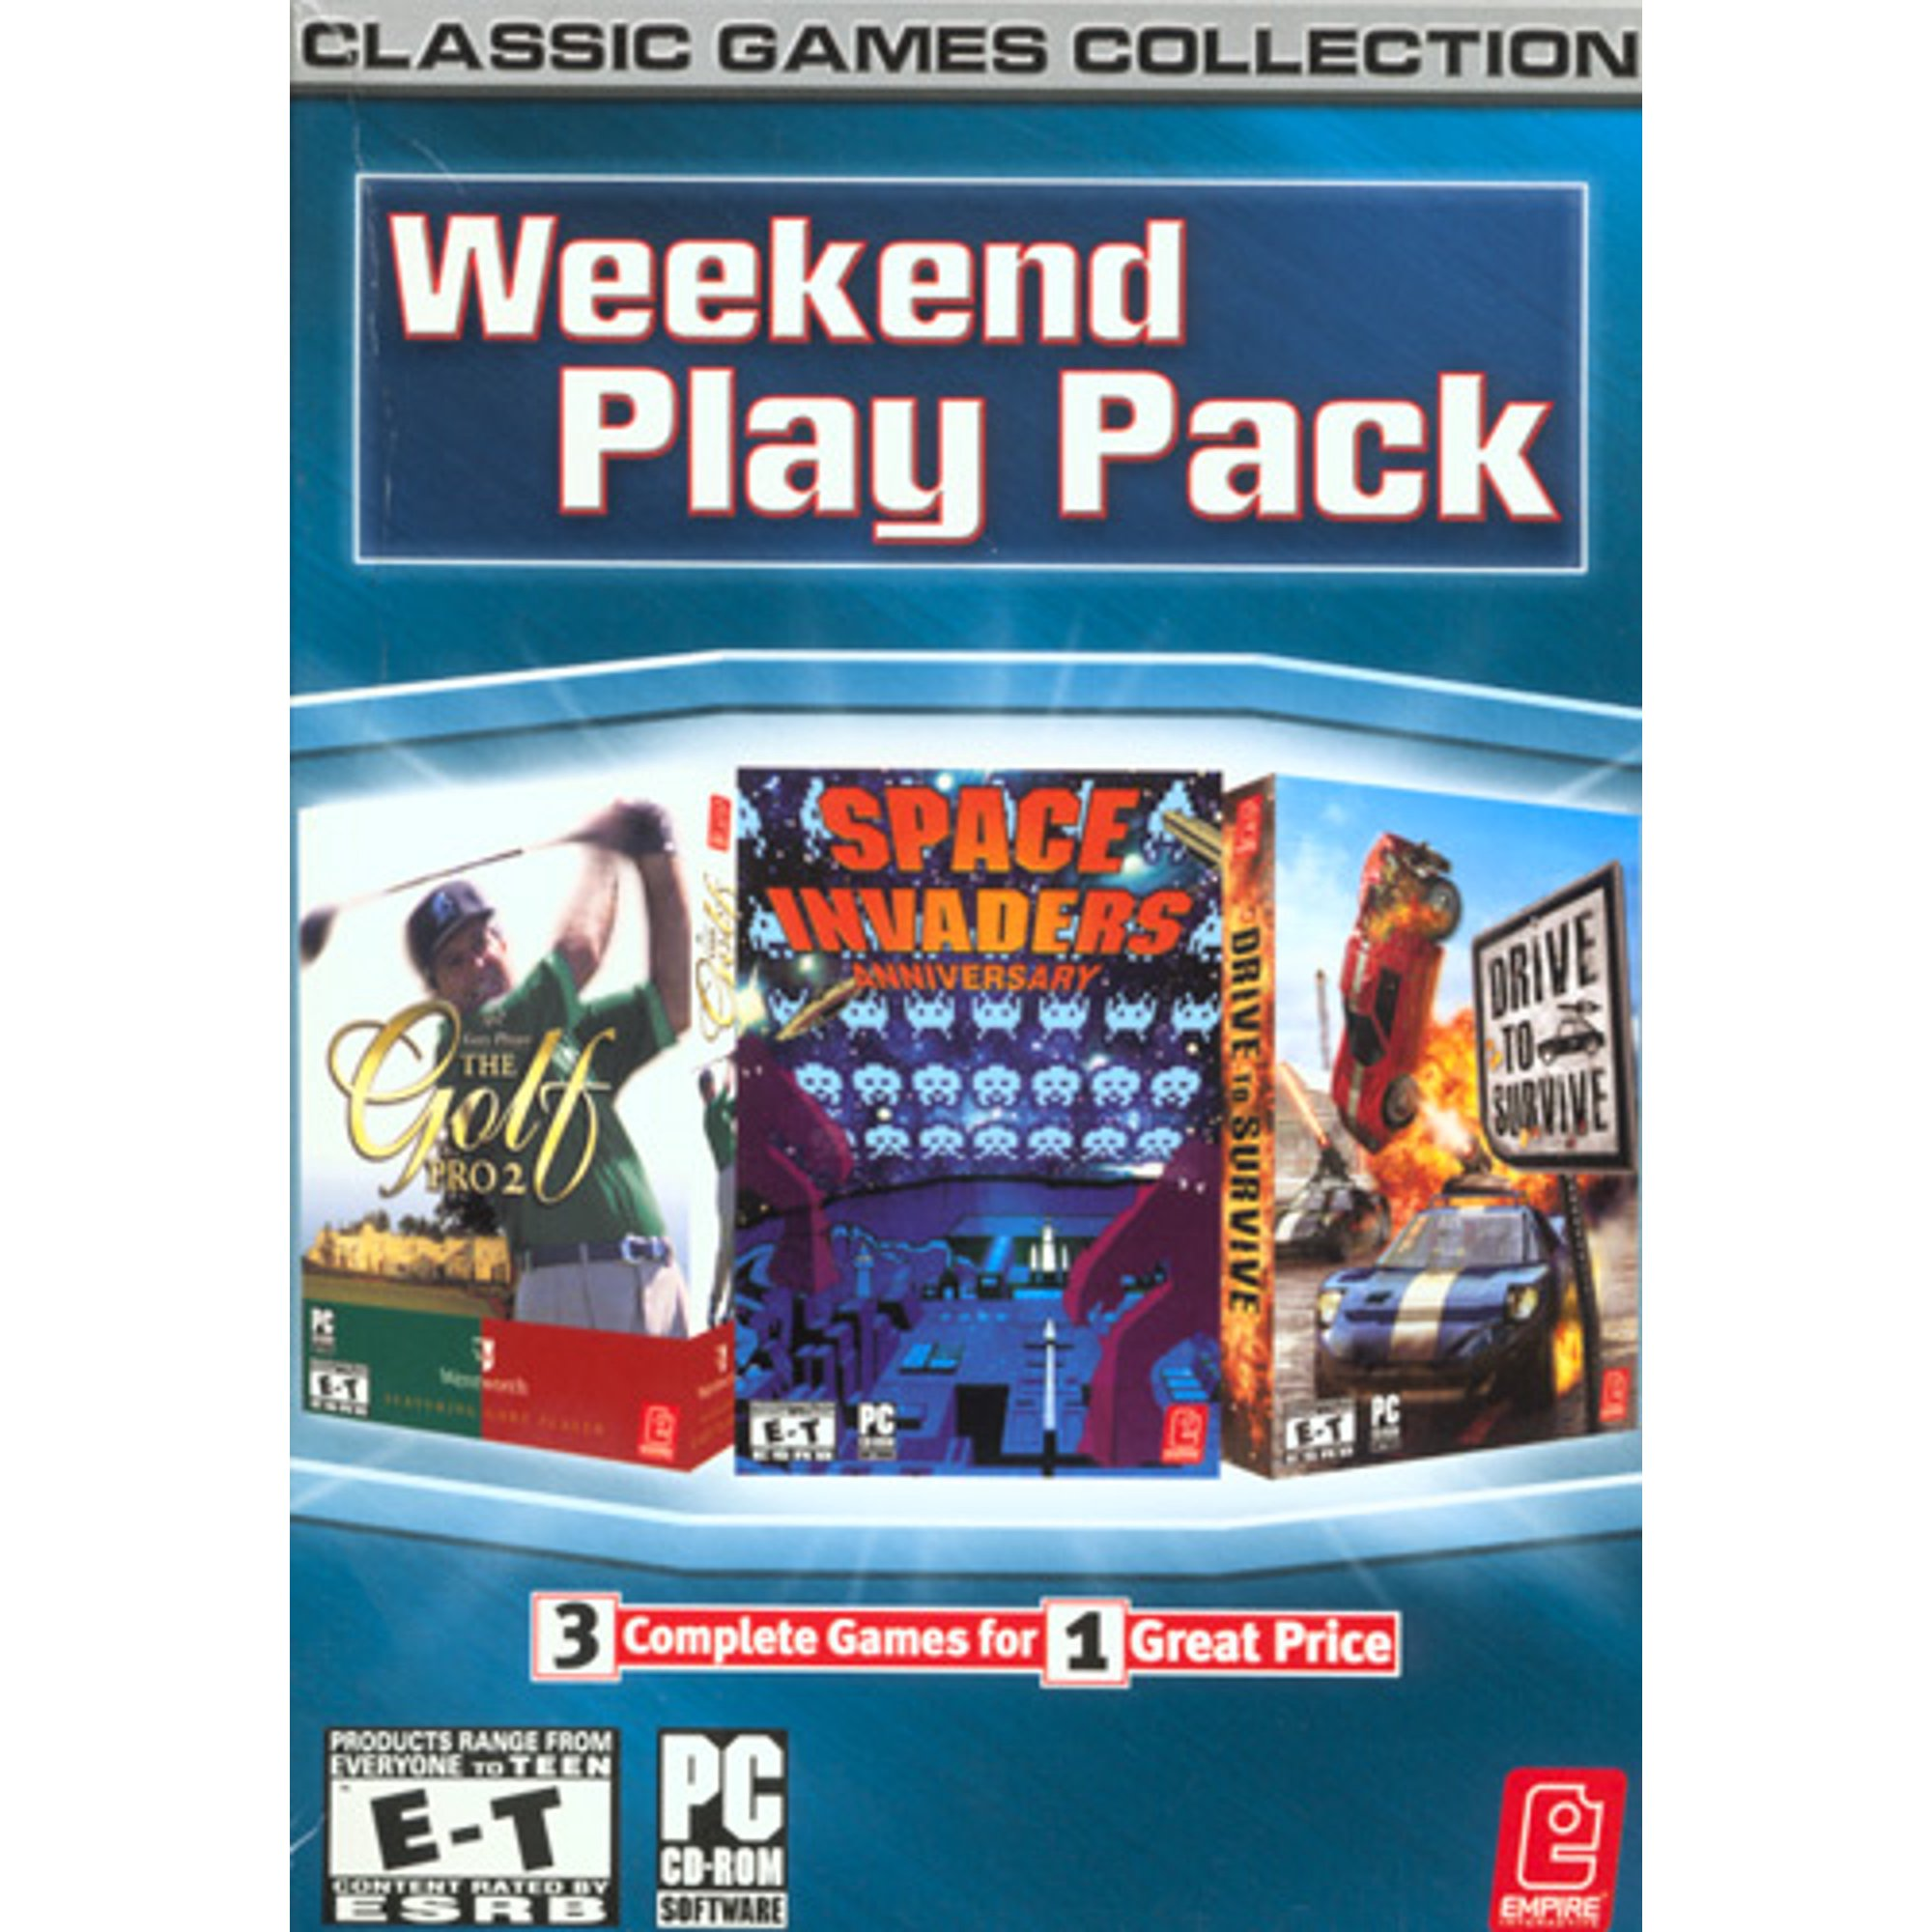 AcTiVision 72614 Weekend Play Pack for PC - Classic Games Collection